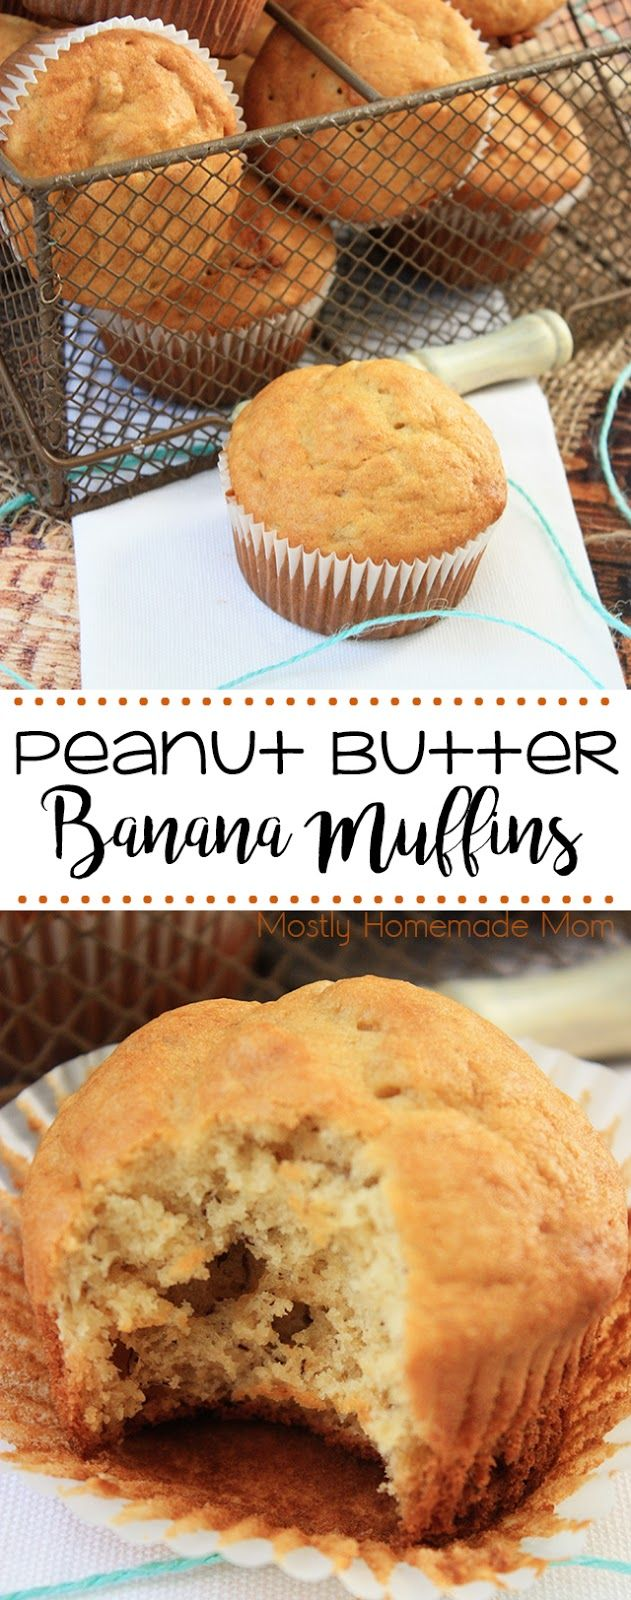 Peanut Butter Banana Muffins - the perfect low sugar breakfast or snack for your family! Make some for now, and freeze some for later!